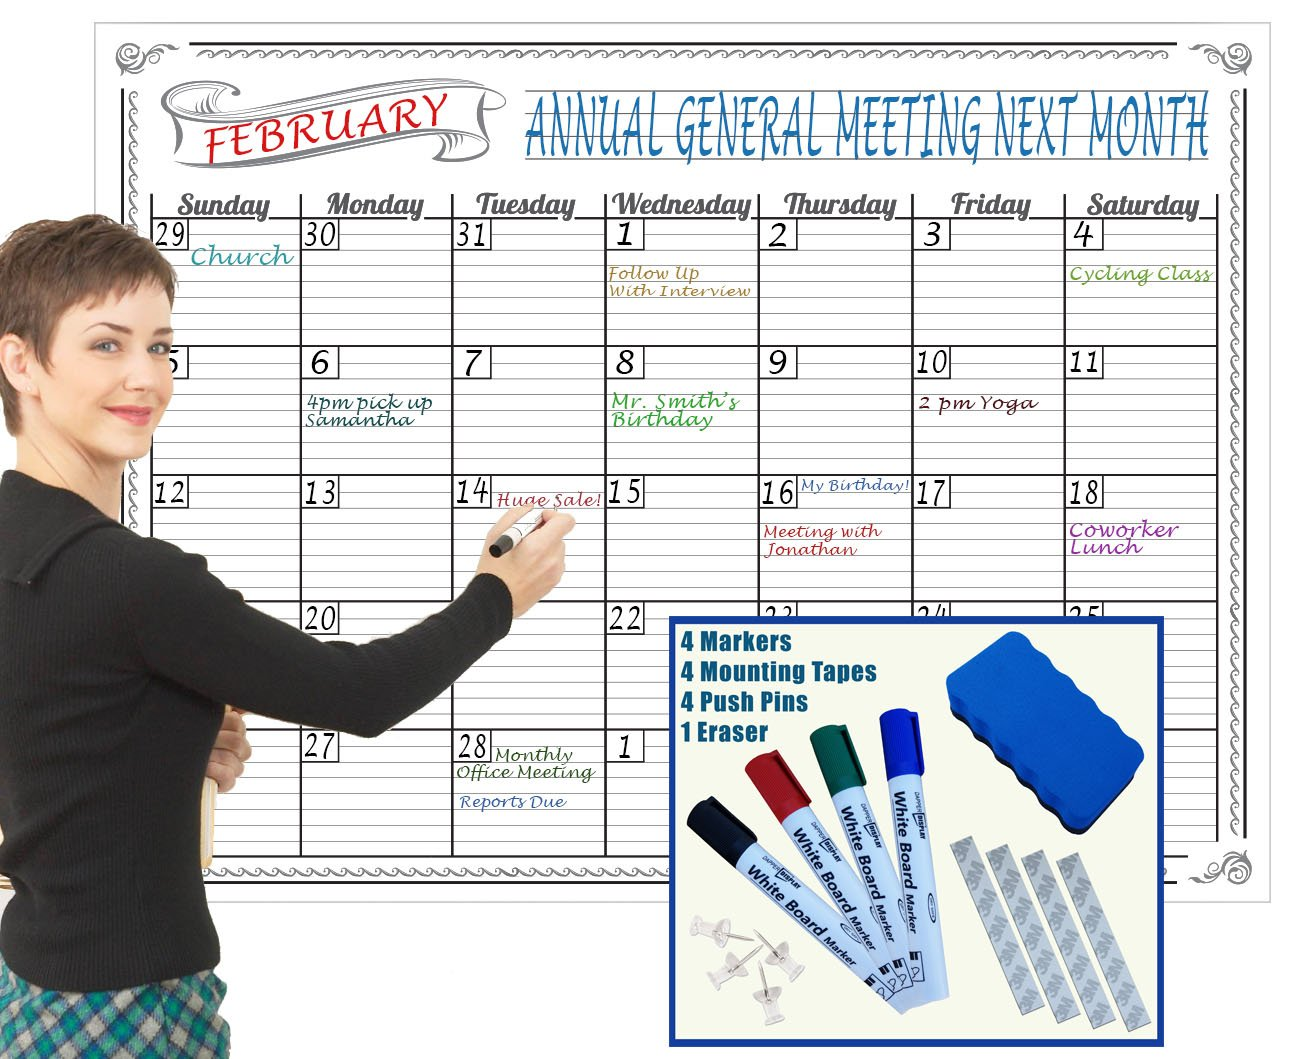 Large Dry Erase Calendar Wall Hanging Classroom Decorations 2018 2019 Teacher Supplies Fun Activity Tracker Kids Chore Chart Poster Organizer Weekly Planner Markers Eraser Office Organization 36x48 in Dapper Display